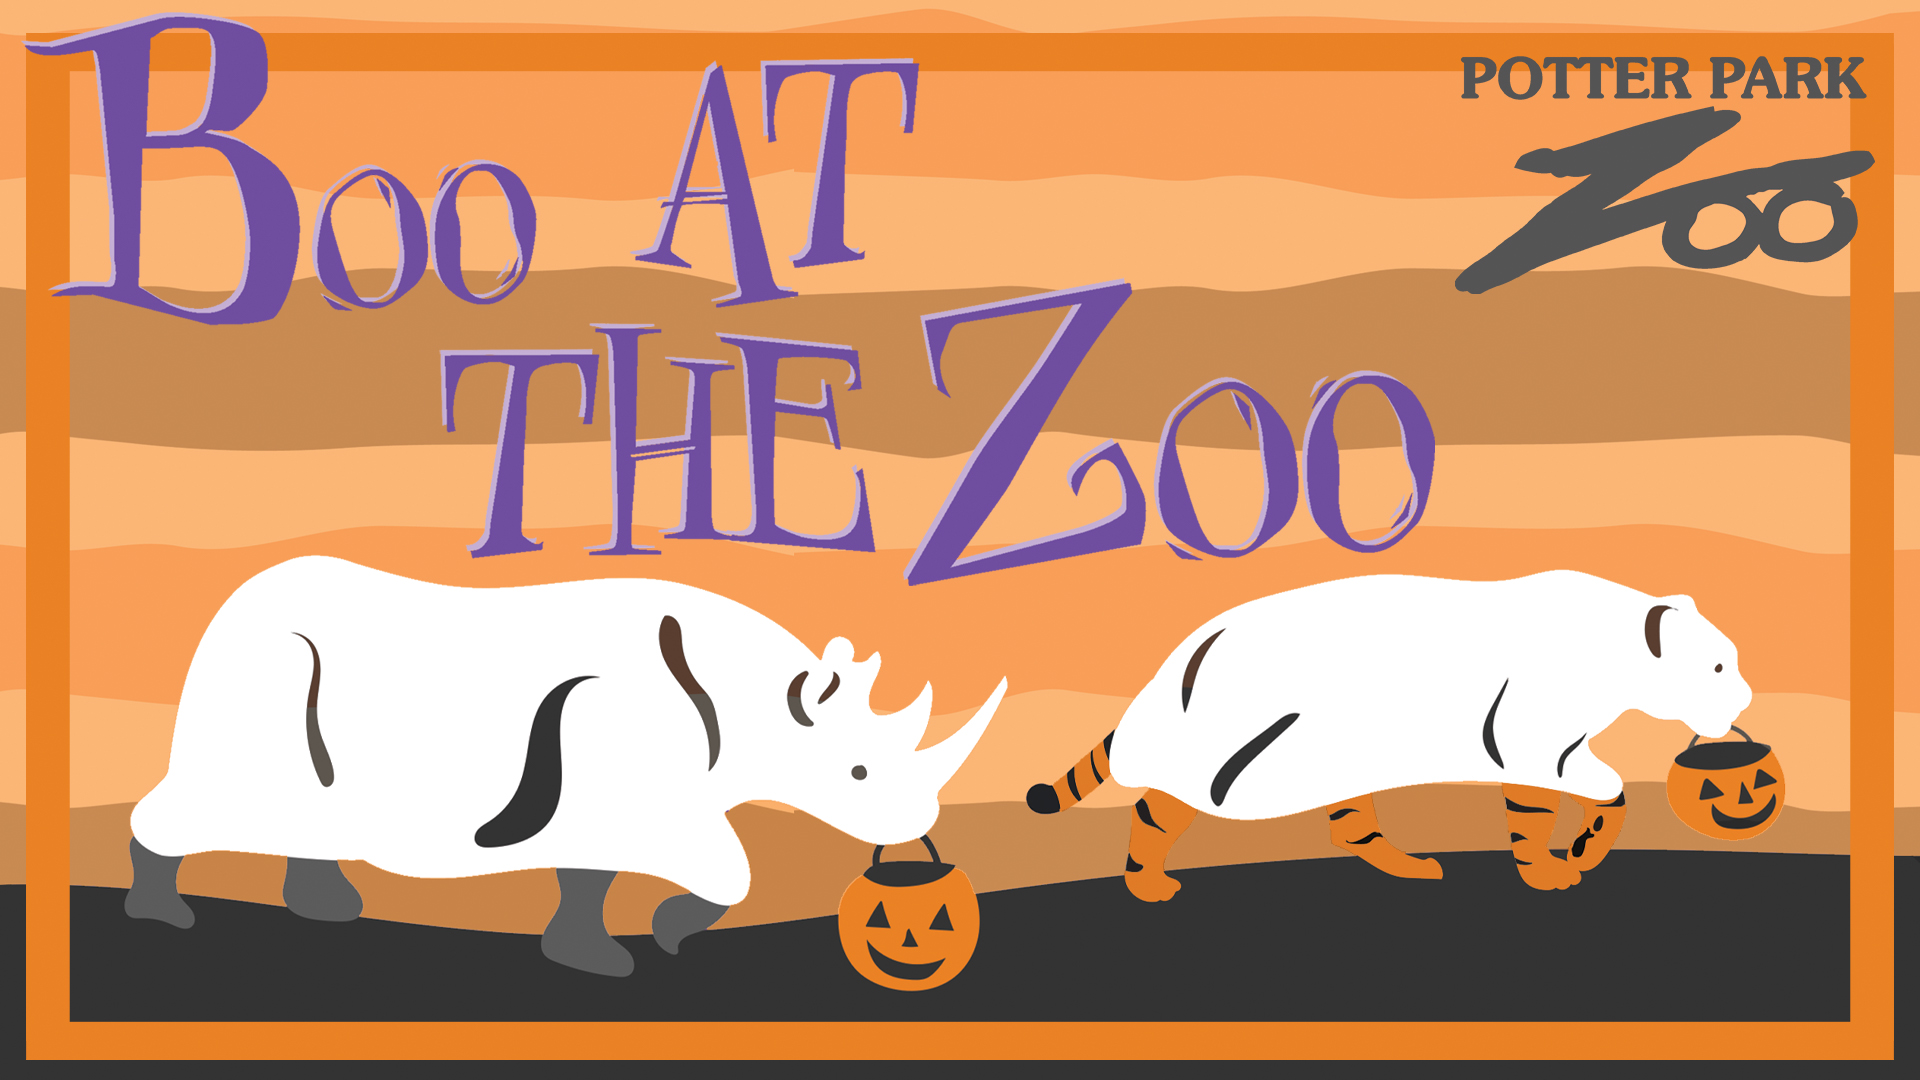 Boo at the Zoo banner